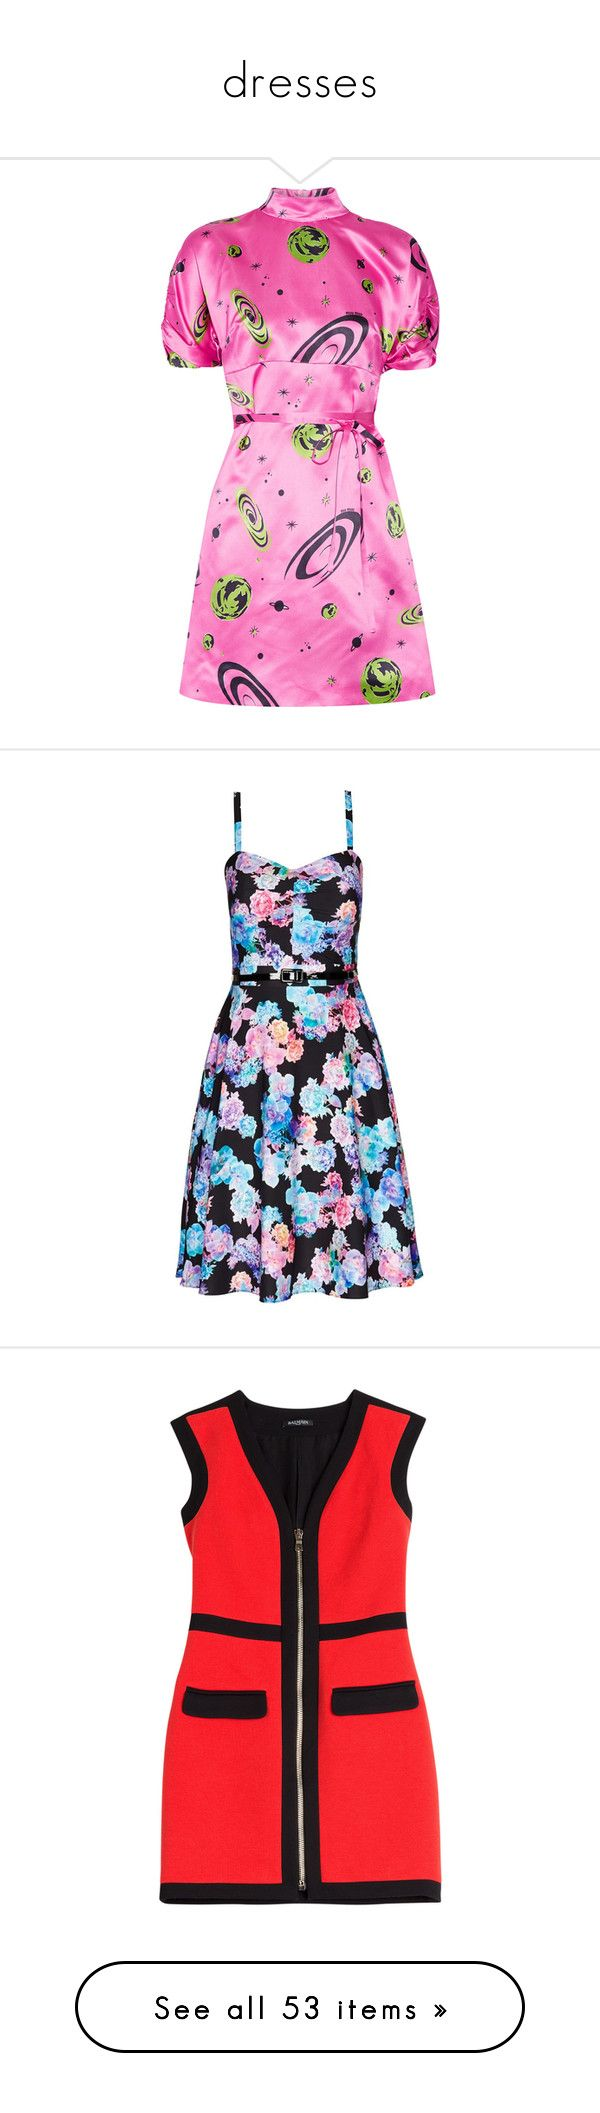 """dresses"" by pasteldemerme ❤ liked on Polyvore featuring dresses, miu miu, pink, tie belt, lace front dress, pink dress, planet dresses, shirred dress, city chic dresses and neon floral dress"